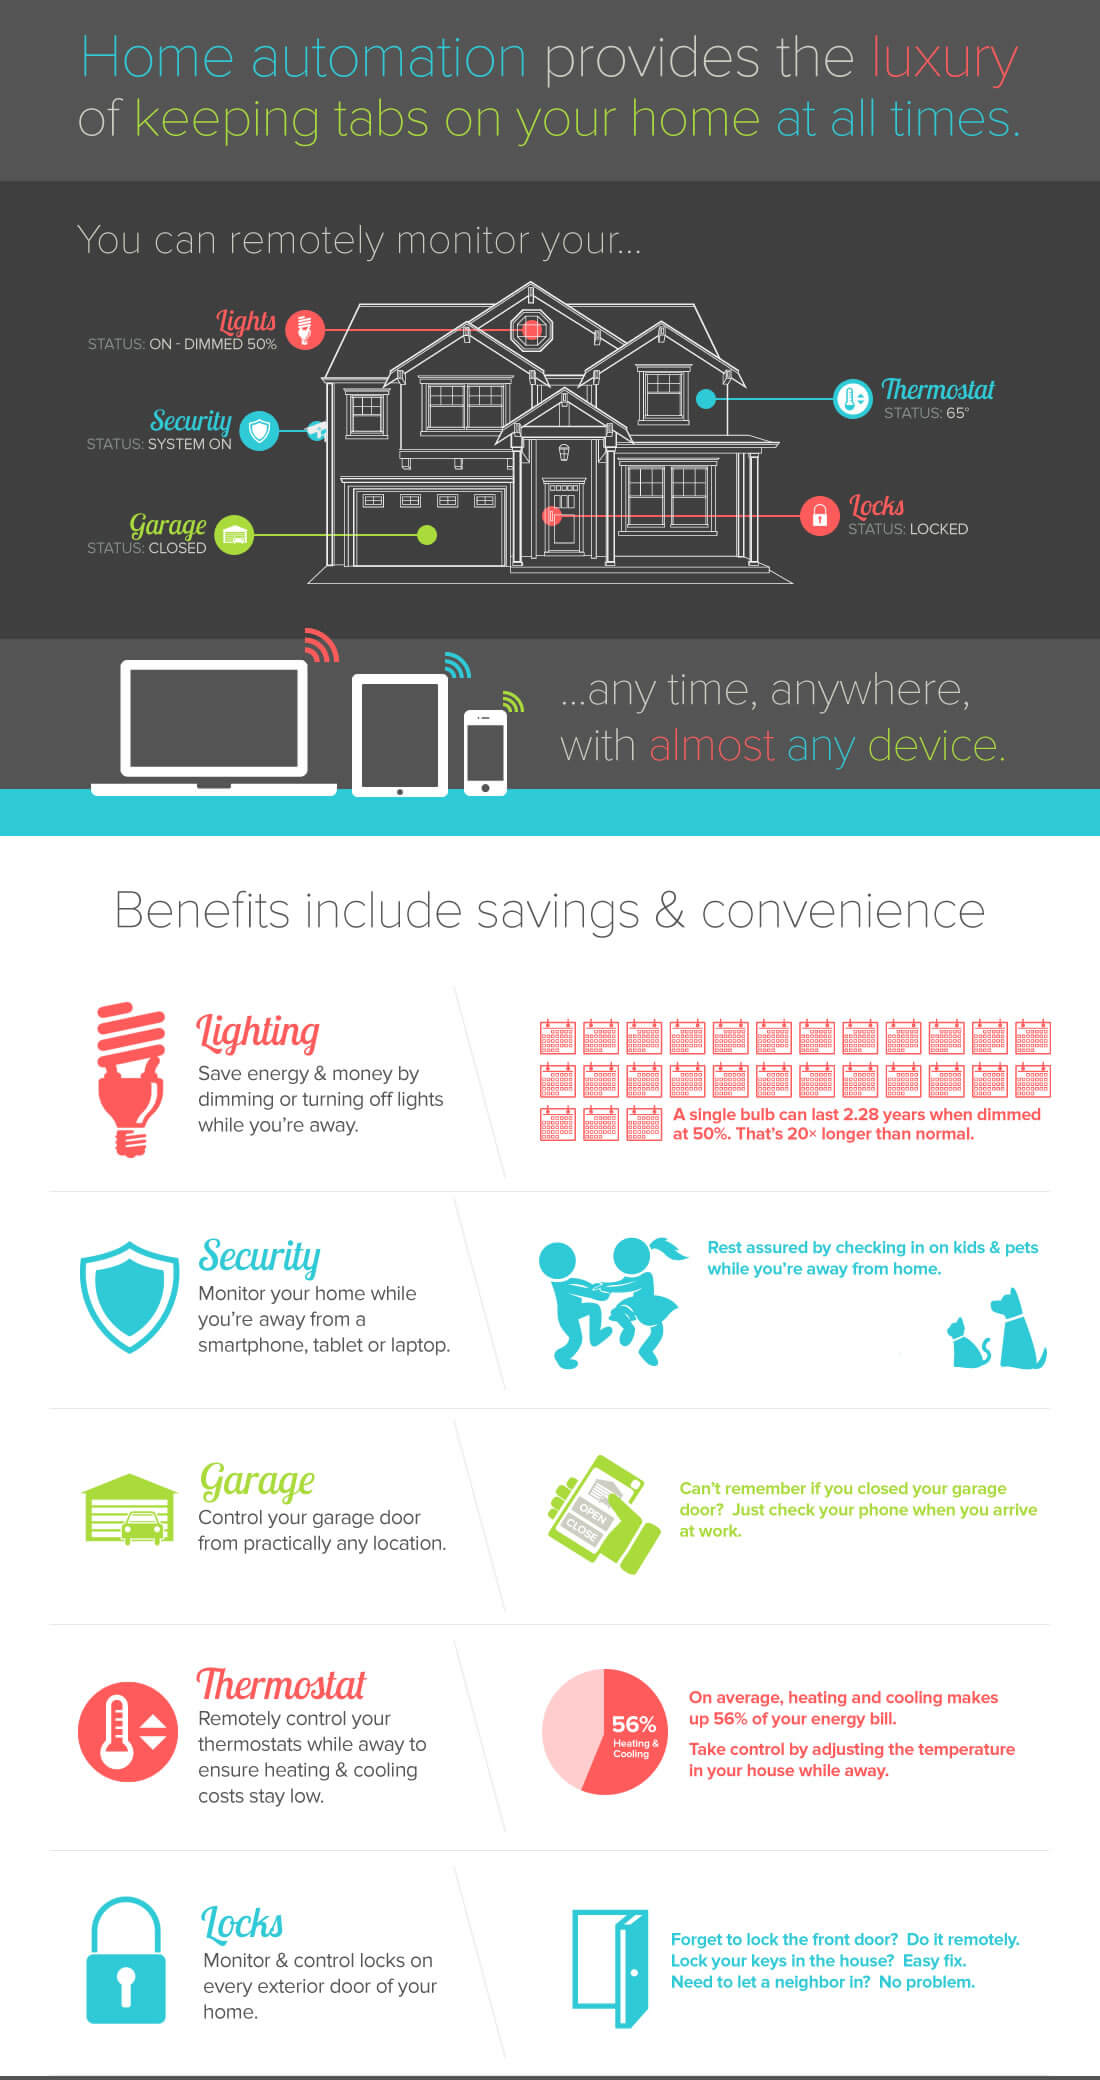 Home Automation Solutions Are Provided By Jones Electrical Services Ltd